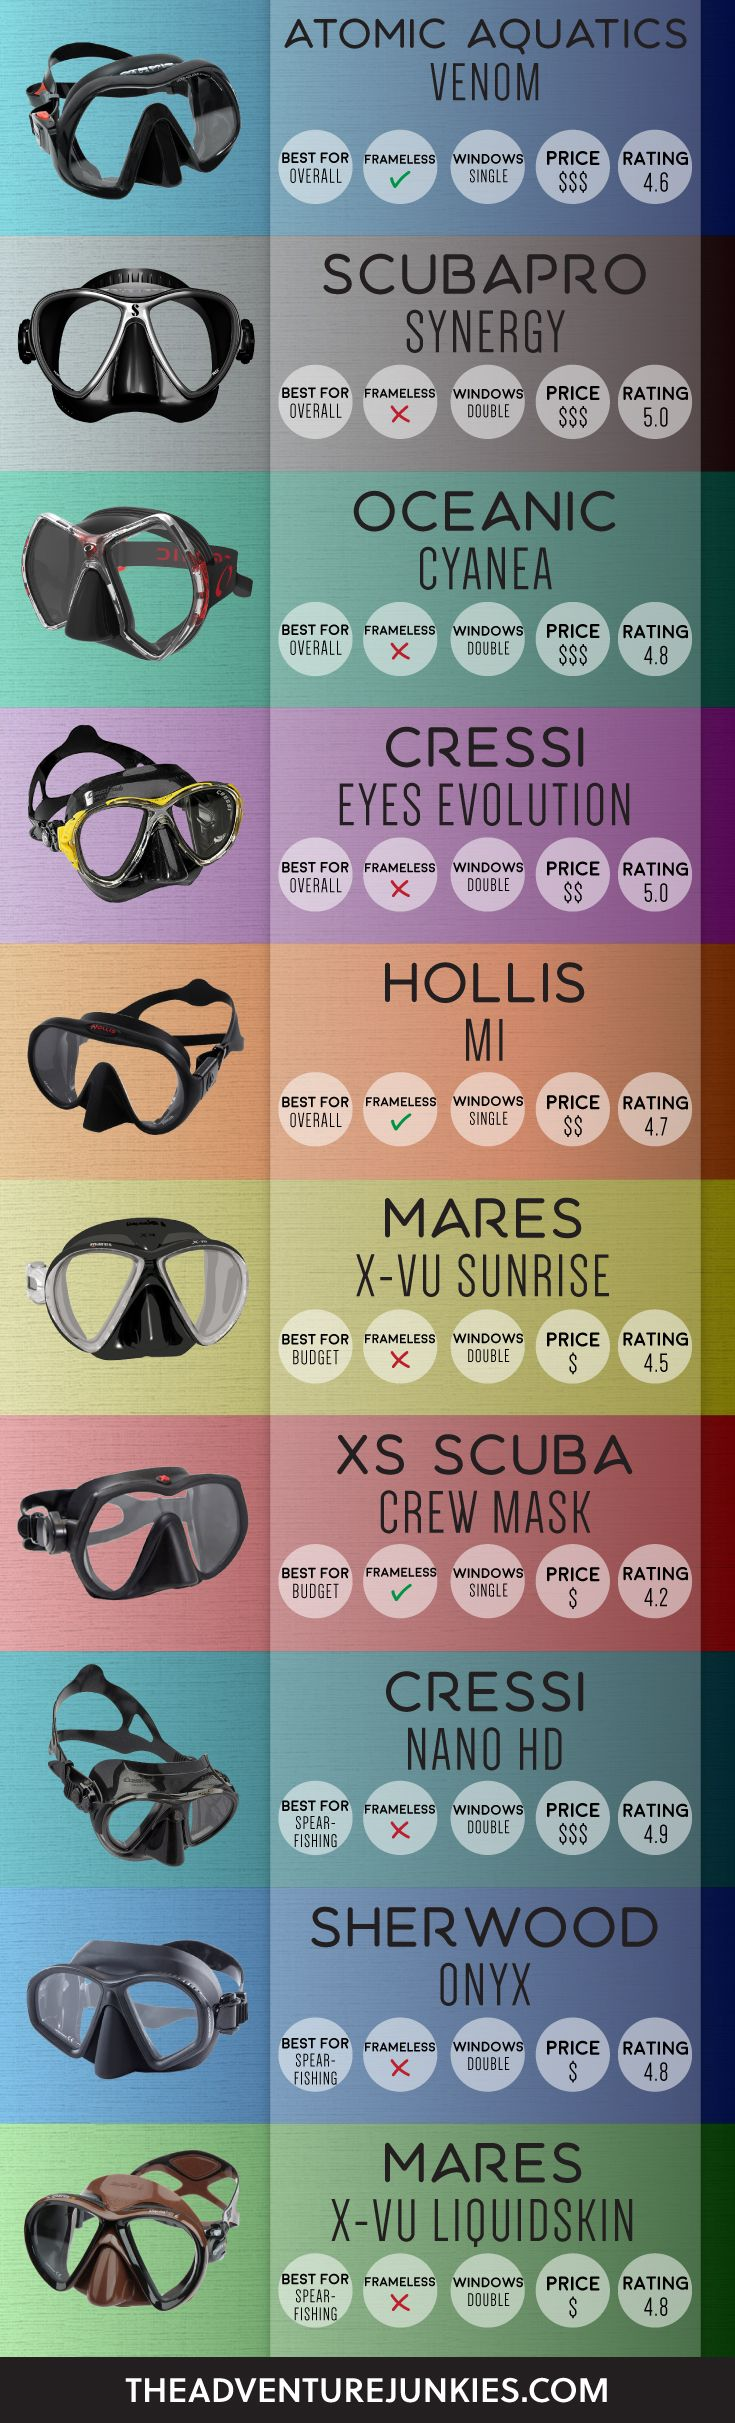 The Best Scuba Diving Masks – Best Dive Gear - Scuba Diving Gear and Equipment Posts – Dive Products and Accessories